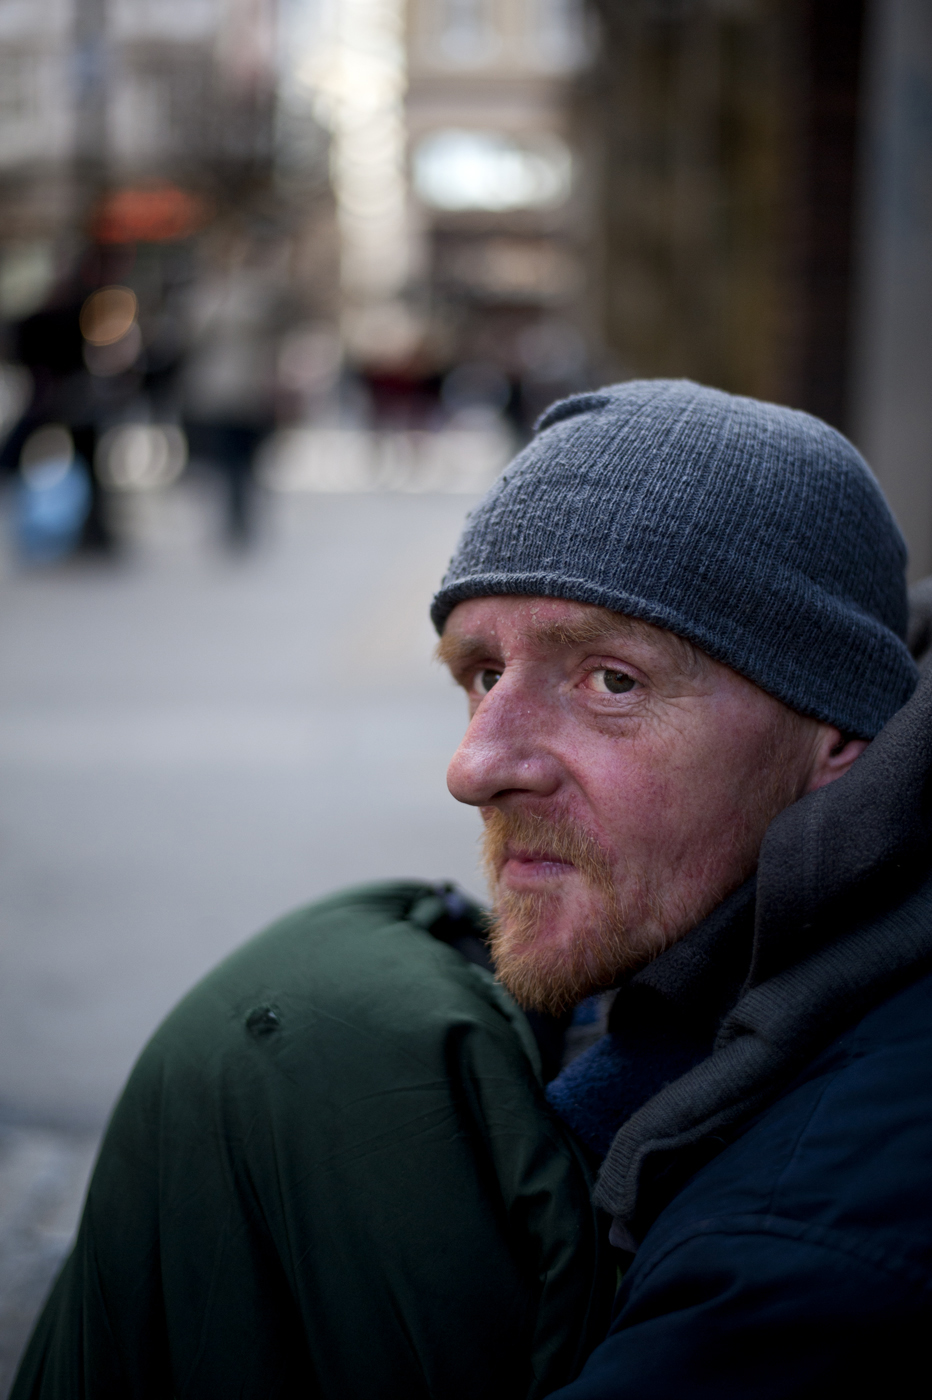 0012_8_homeless_london.jpg